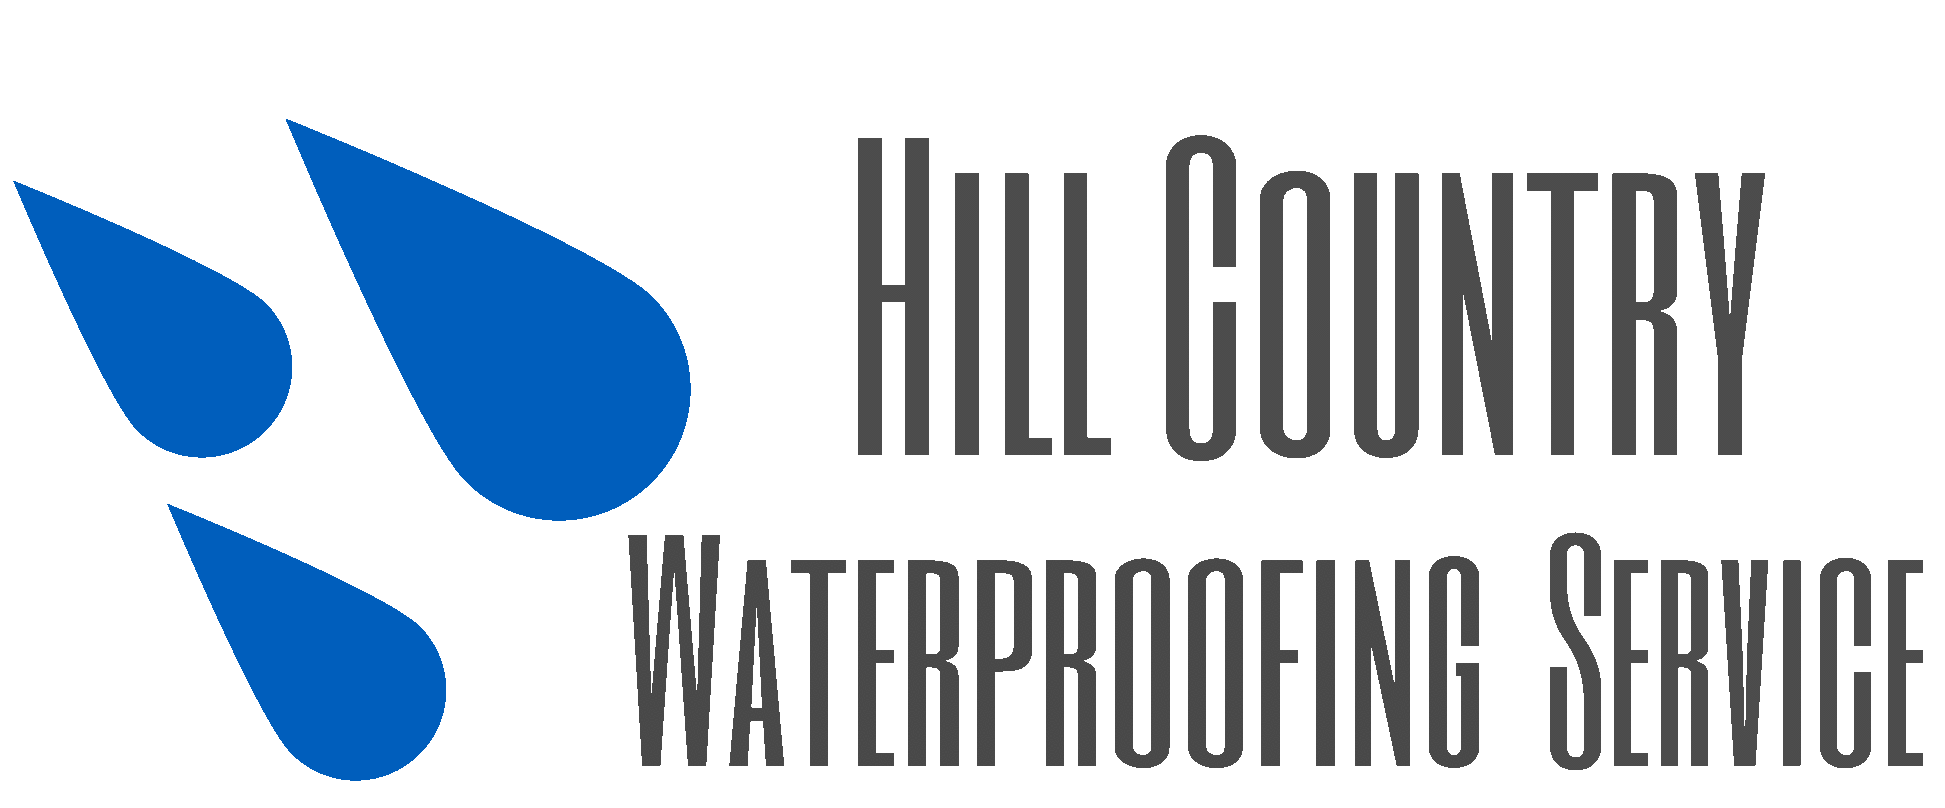 Hill Country Waterproofing Service